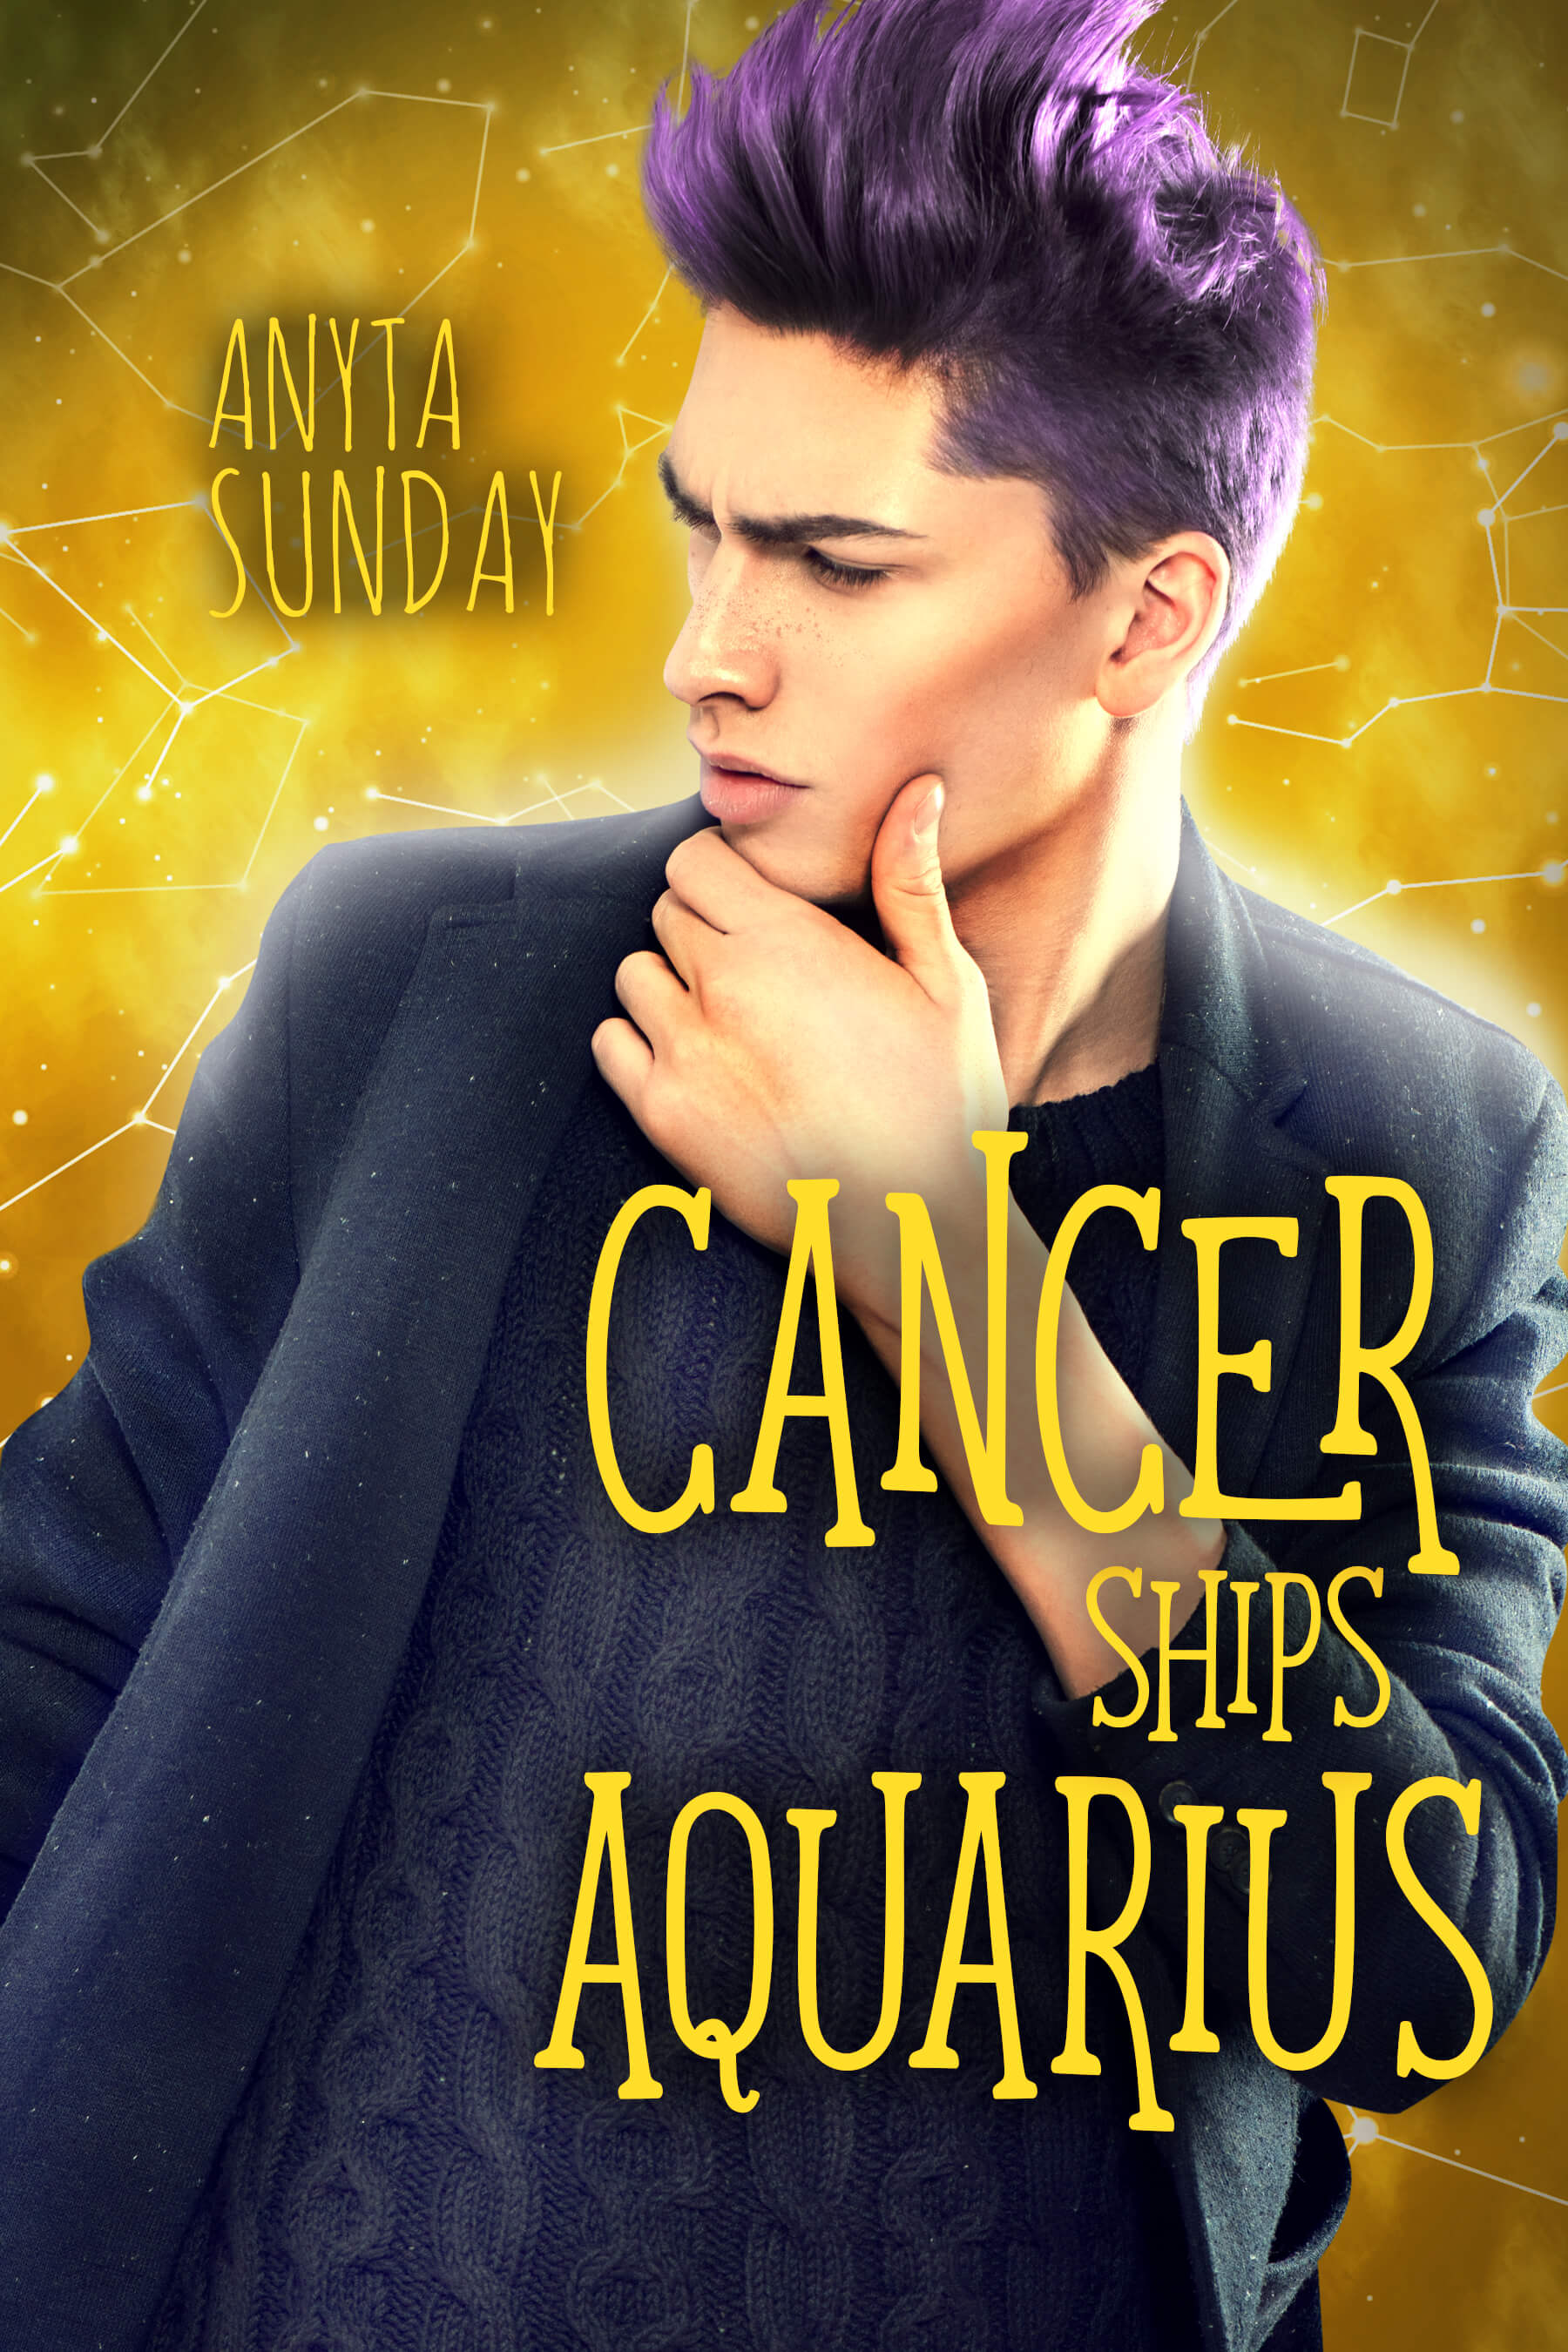 Signs of Love - Tome  5 : Cancer ships Aquarius de Anyta Sunday Cancer11